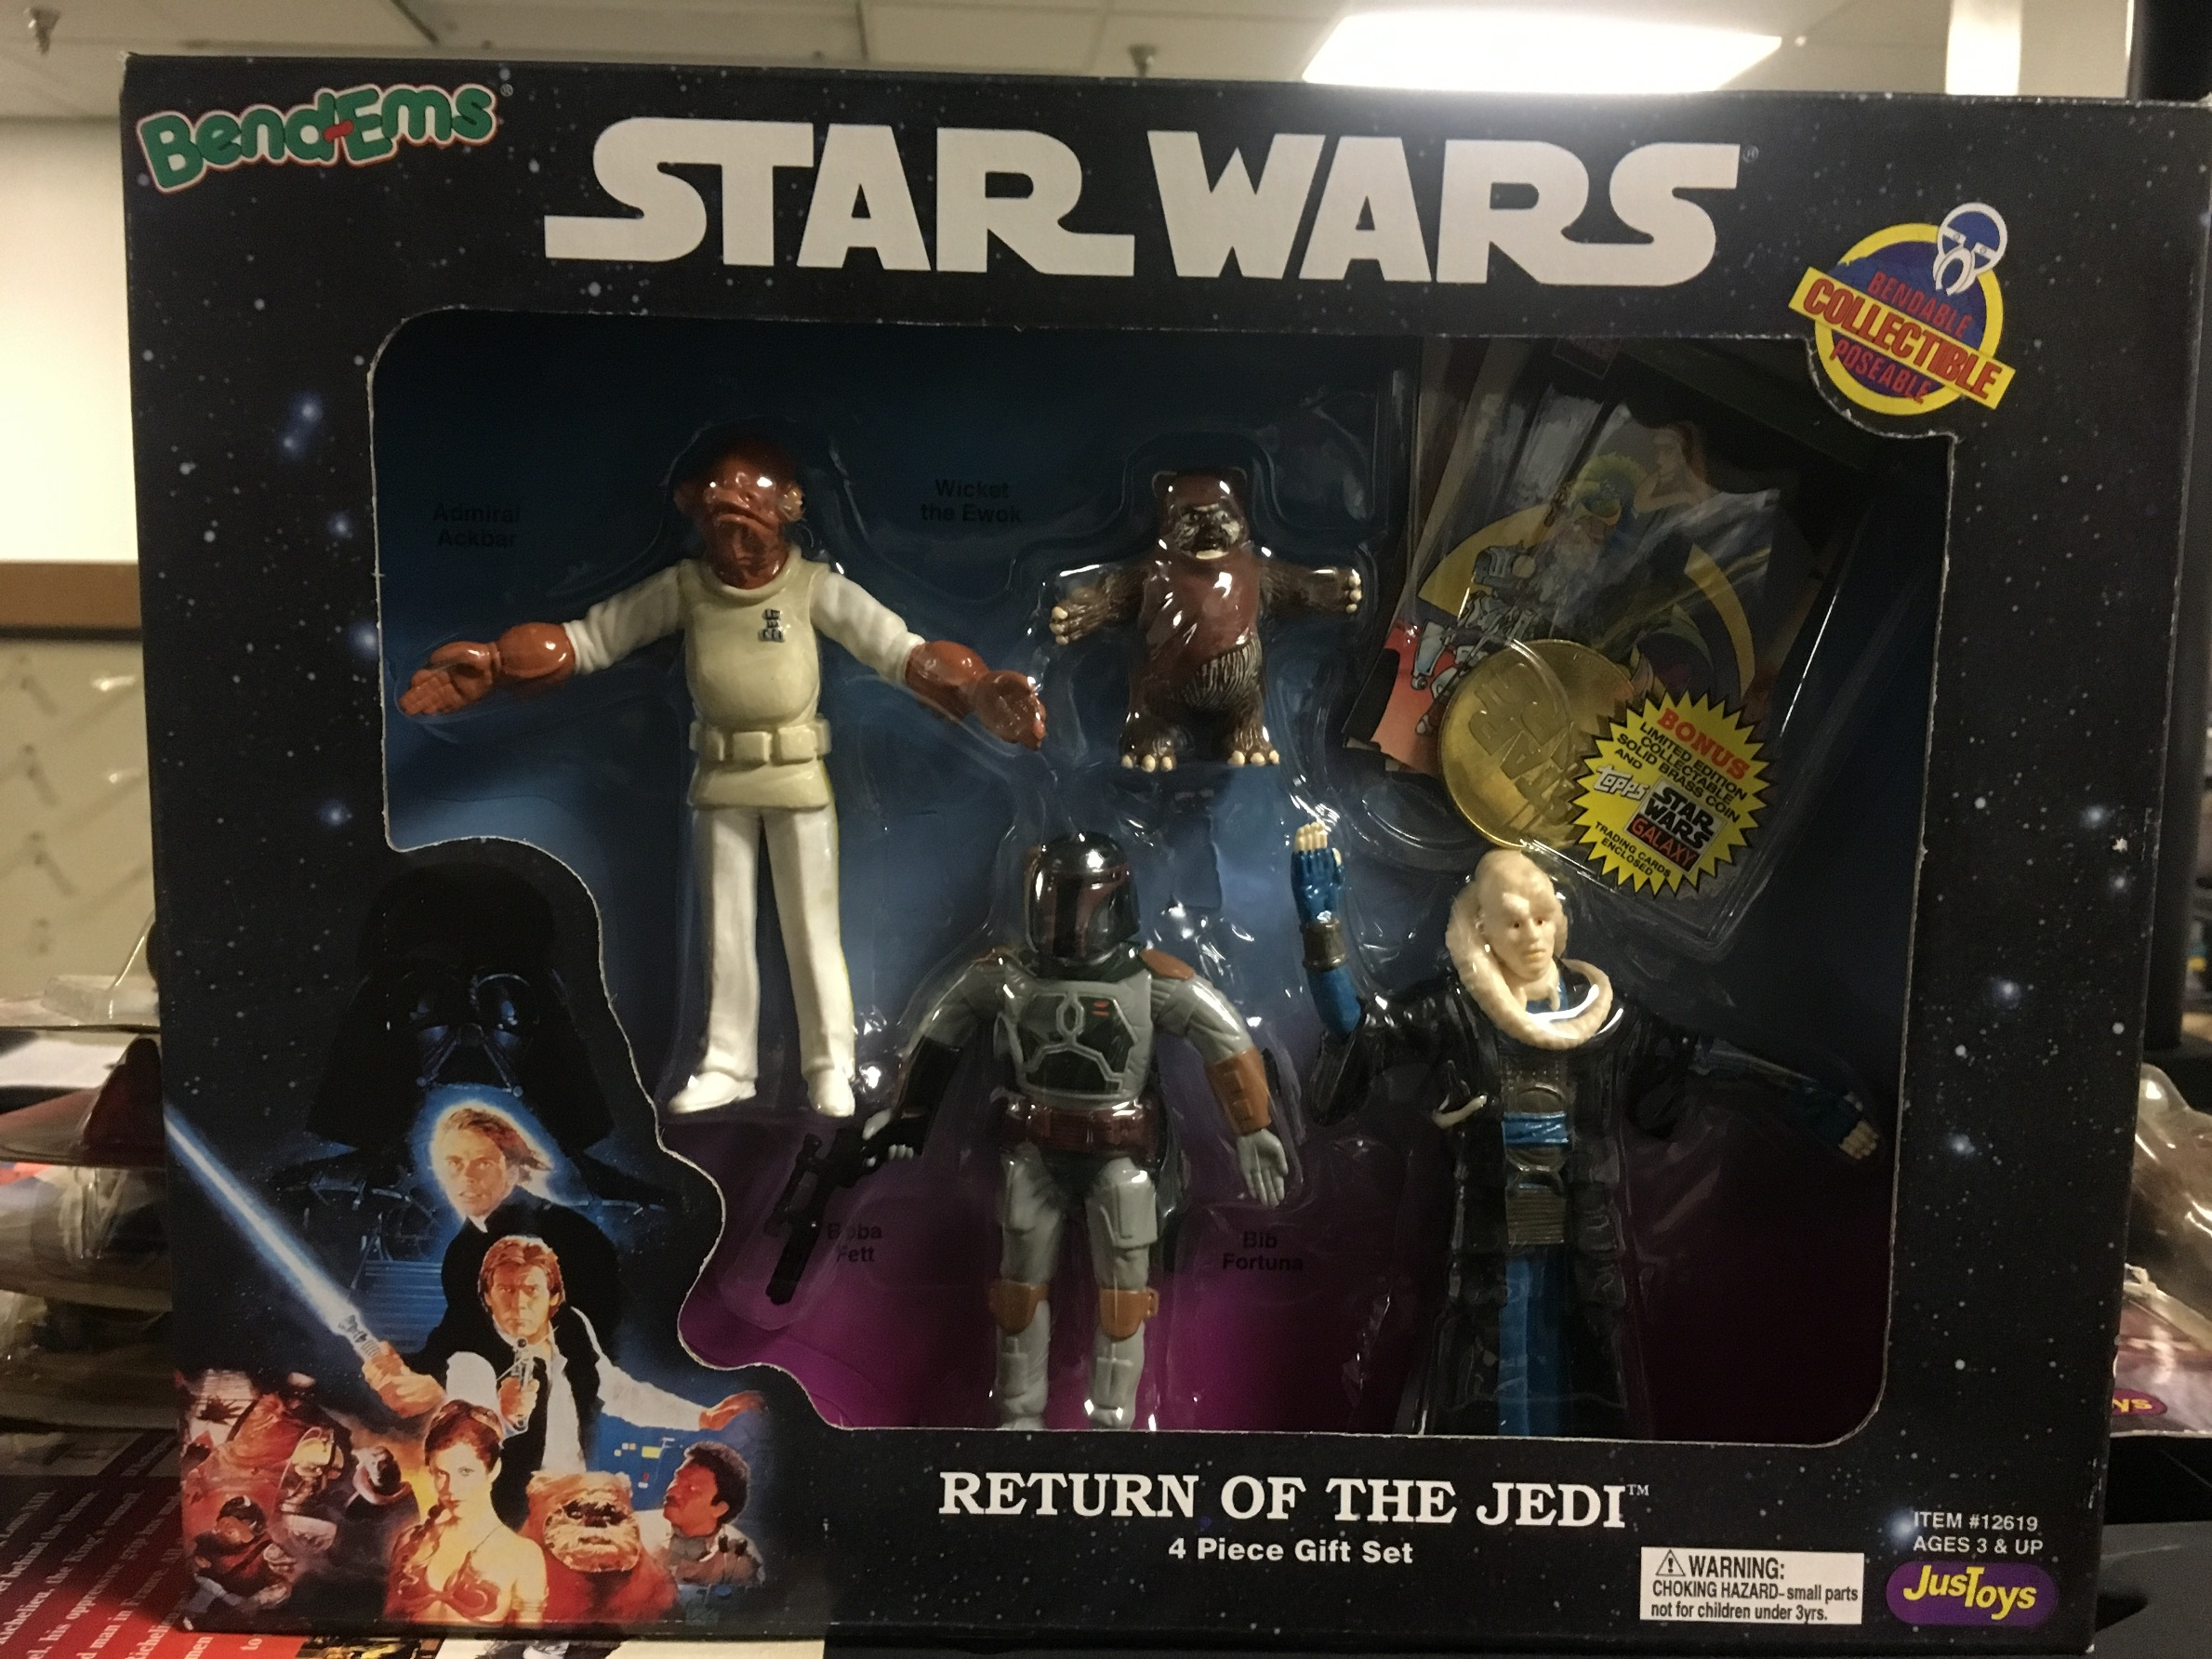 Return of the Jedi (Admiral Ackbar, Wickett an Ewok, Boba Fett, Bib Fortuna)